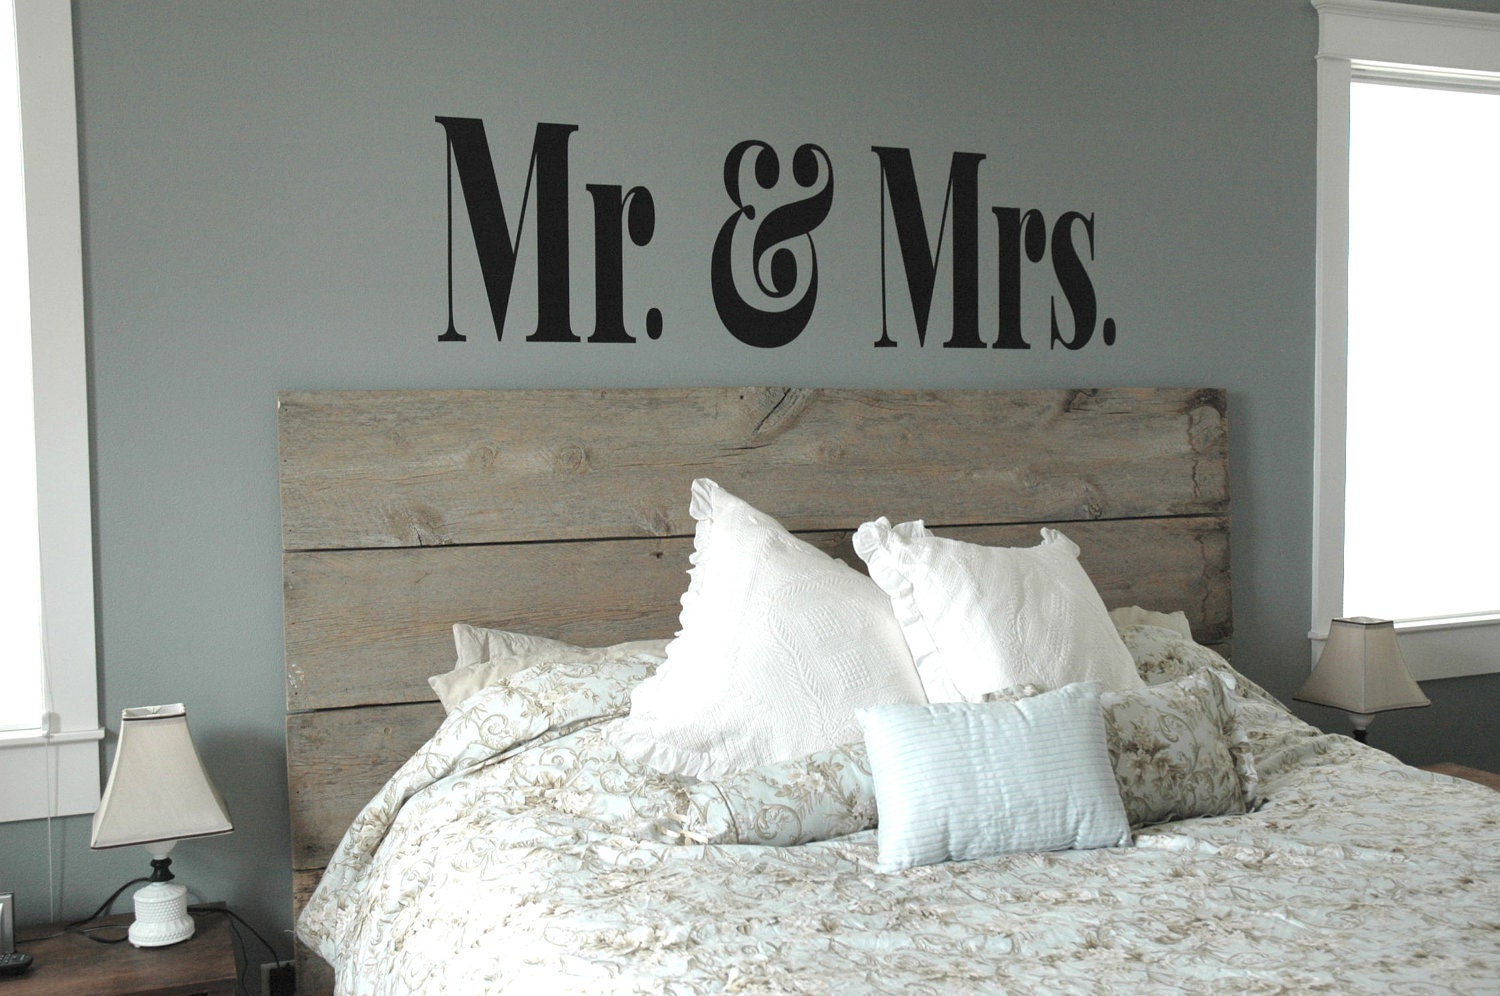 XL MR & MRS Vinyl Decal Master Bedroom Decor Modern